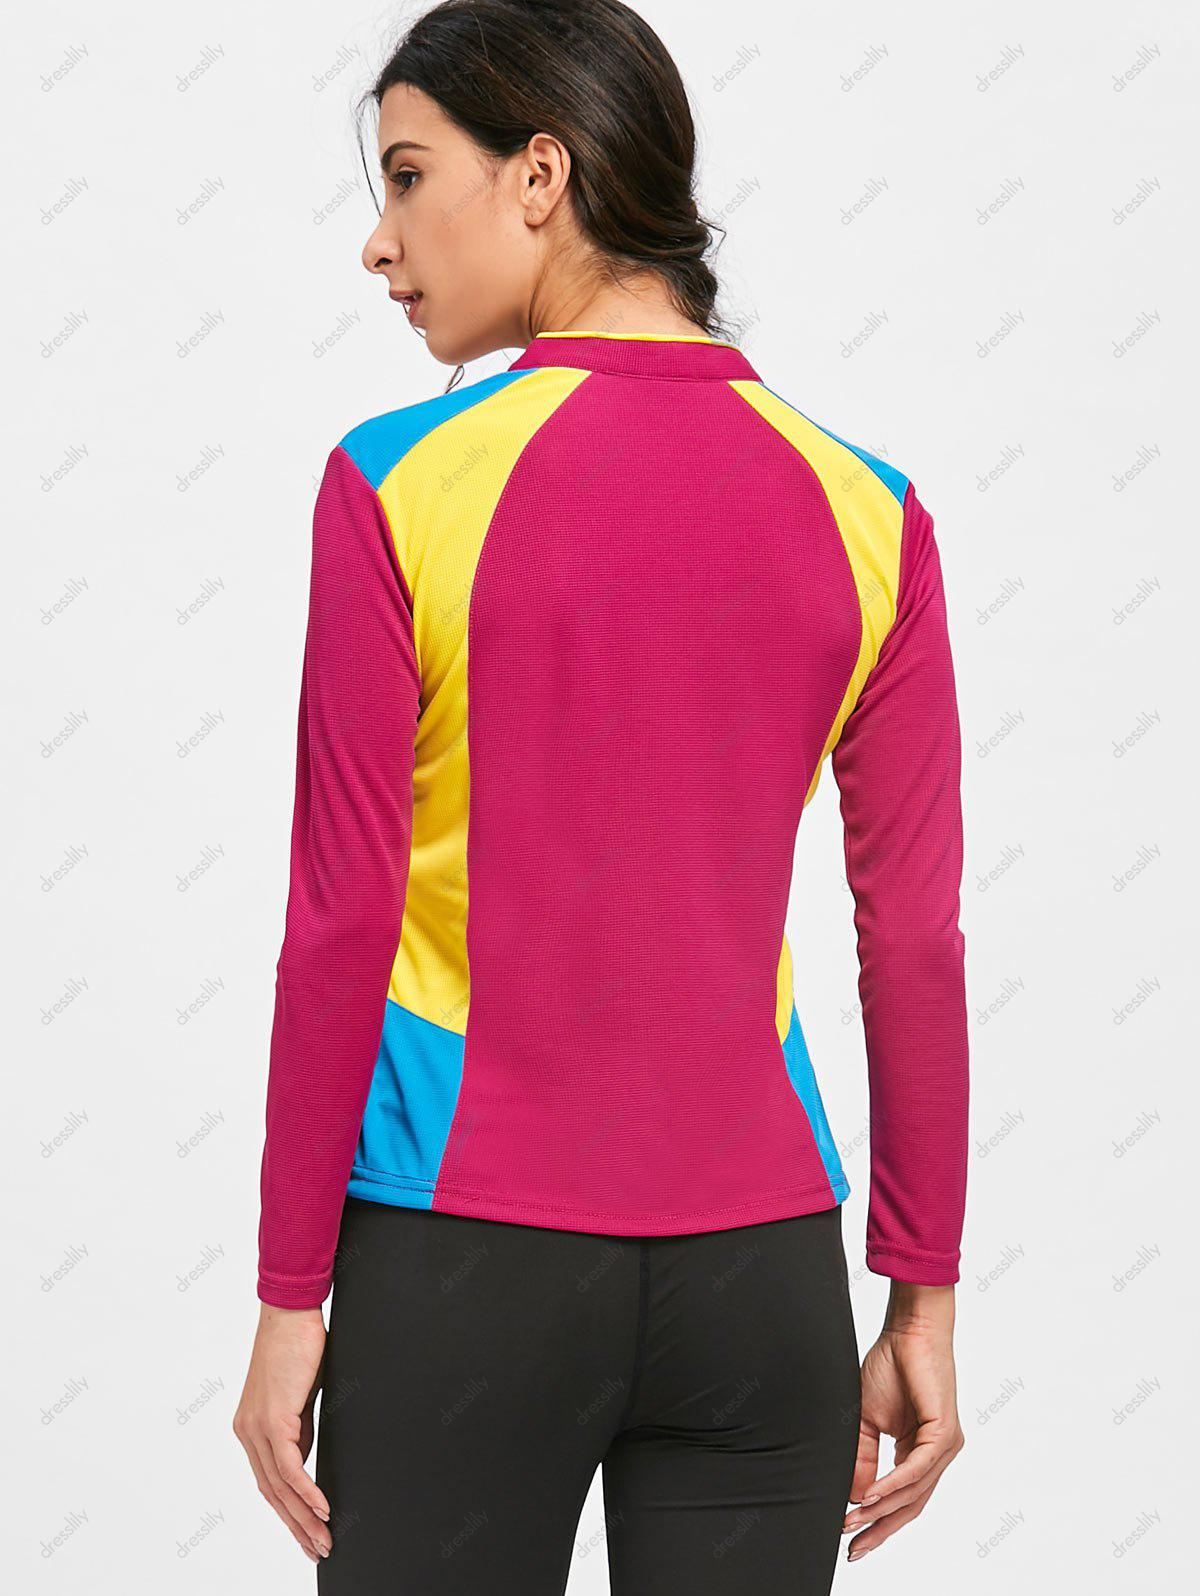 Half Zip Hit Color Cycling T-shirt - DEEP RED M